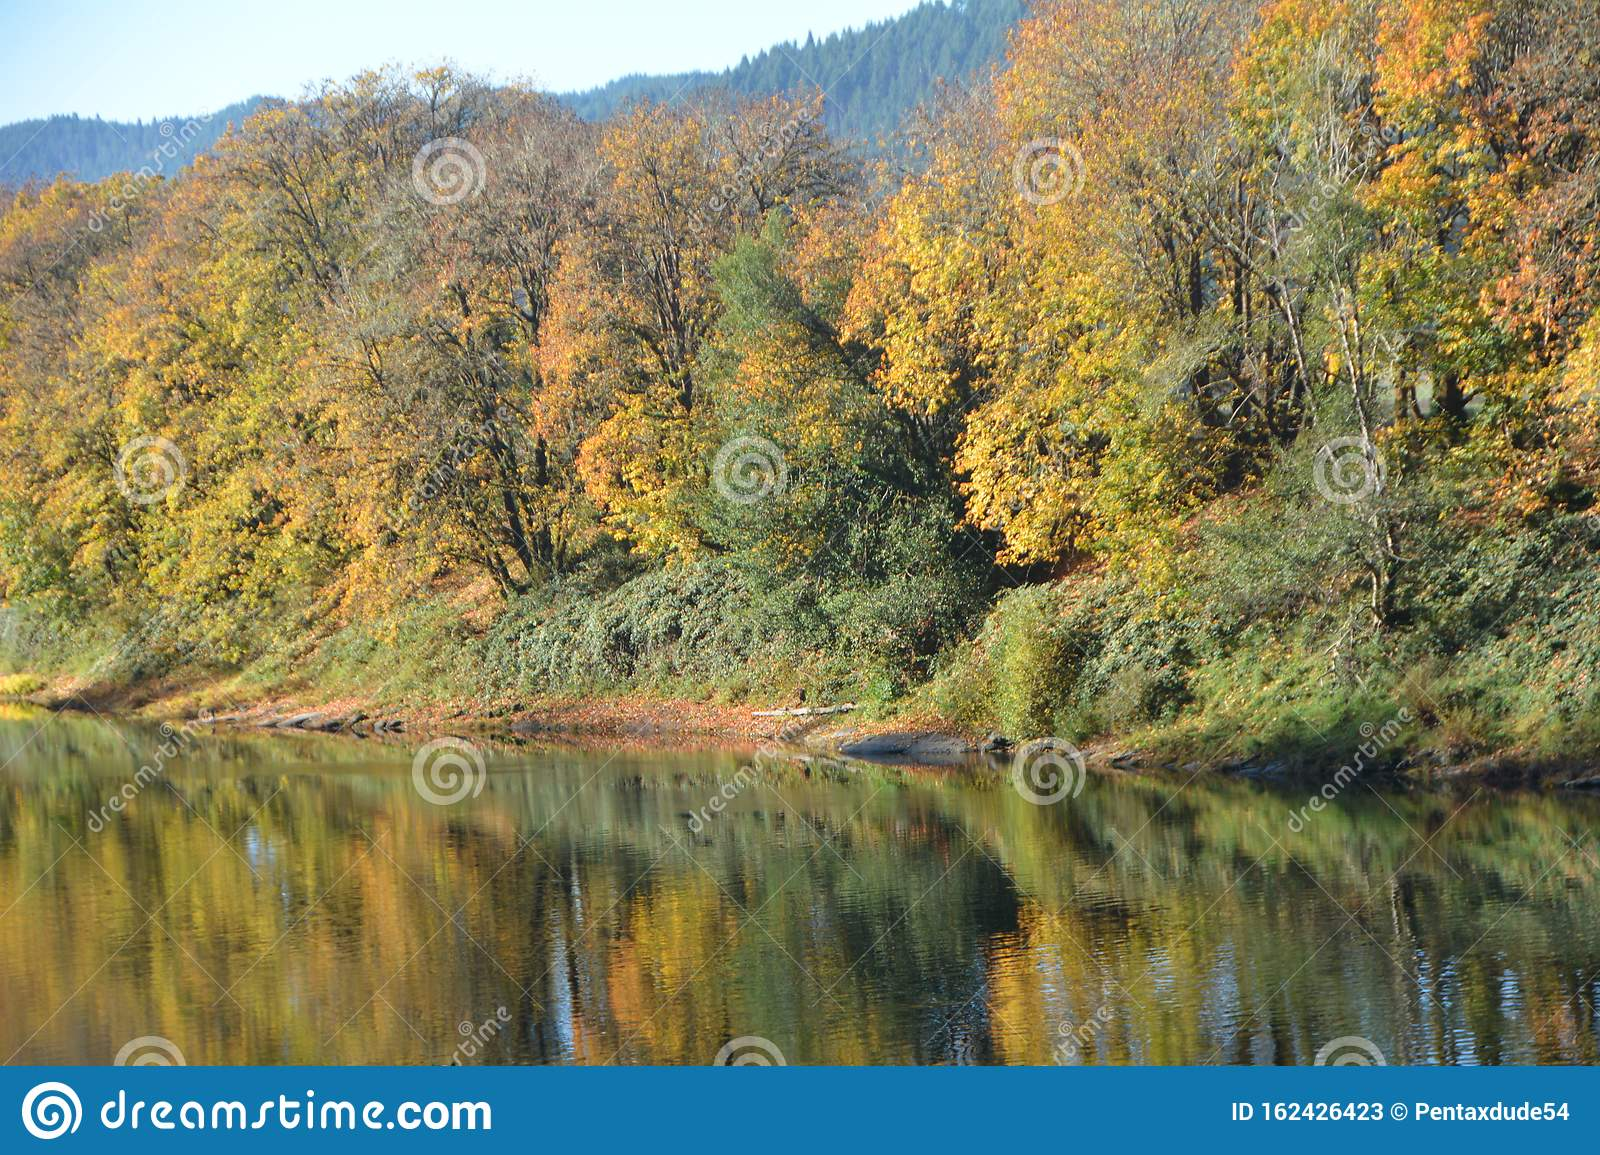 Autumn reflections of a forest on the Umpqua River in Oregon